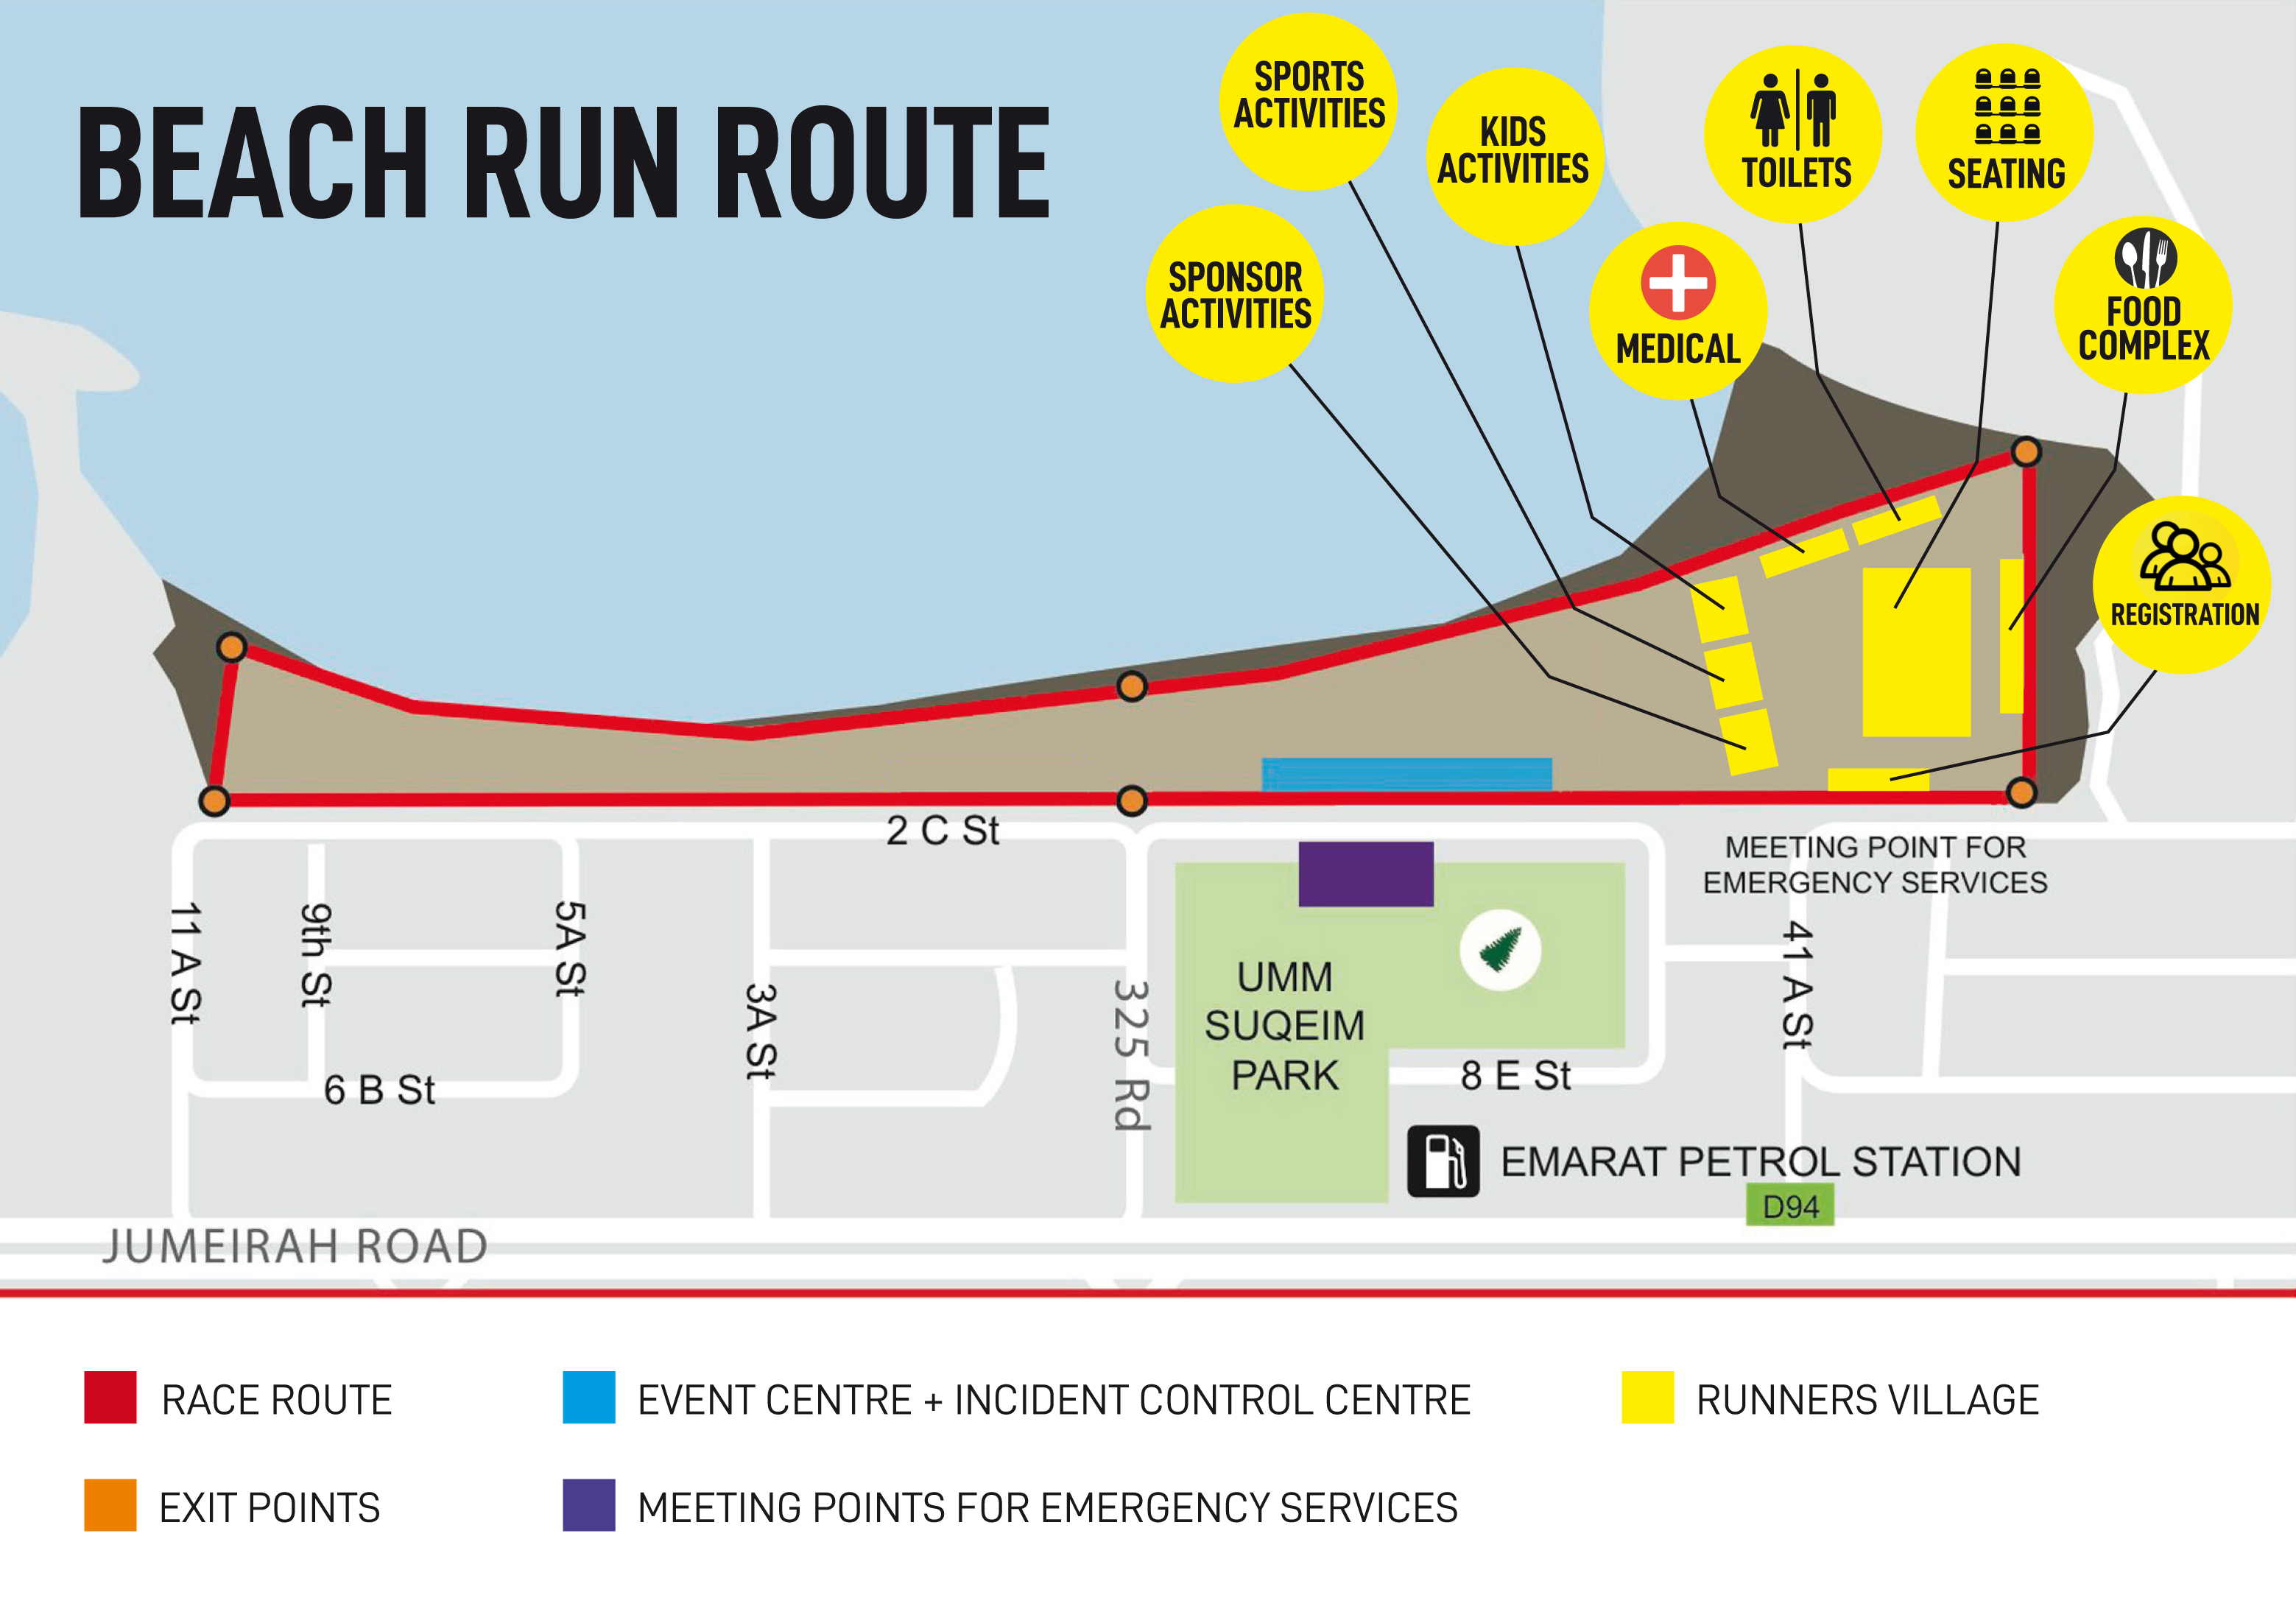 BEACH RUN ROUTE